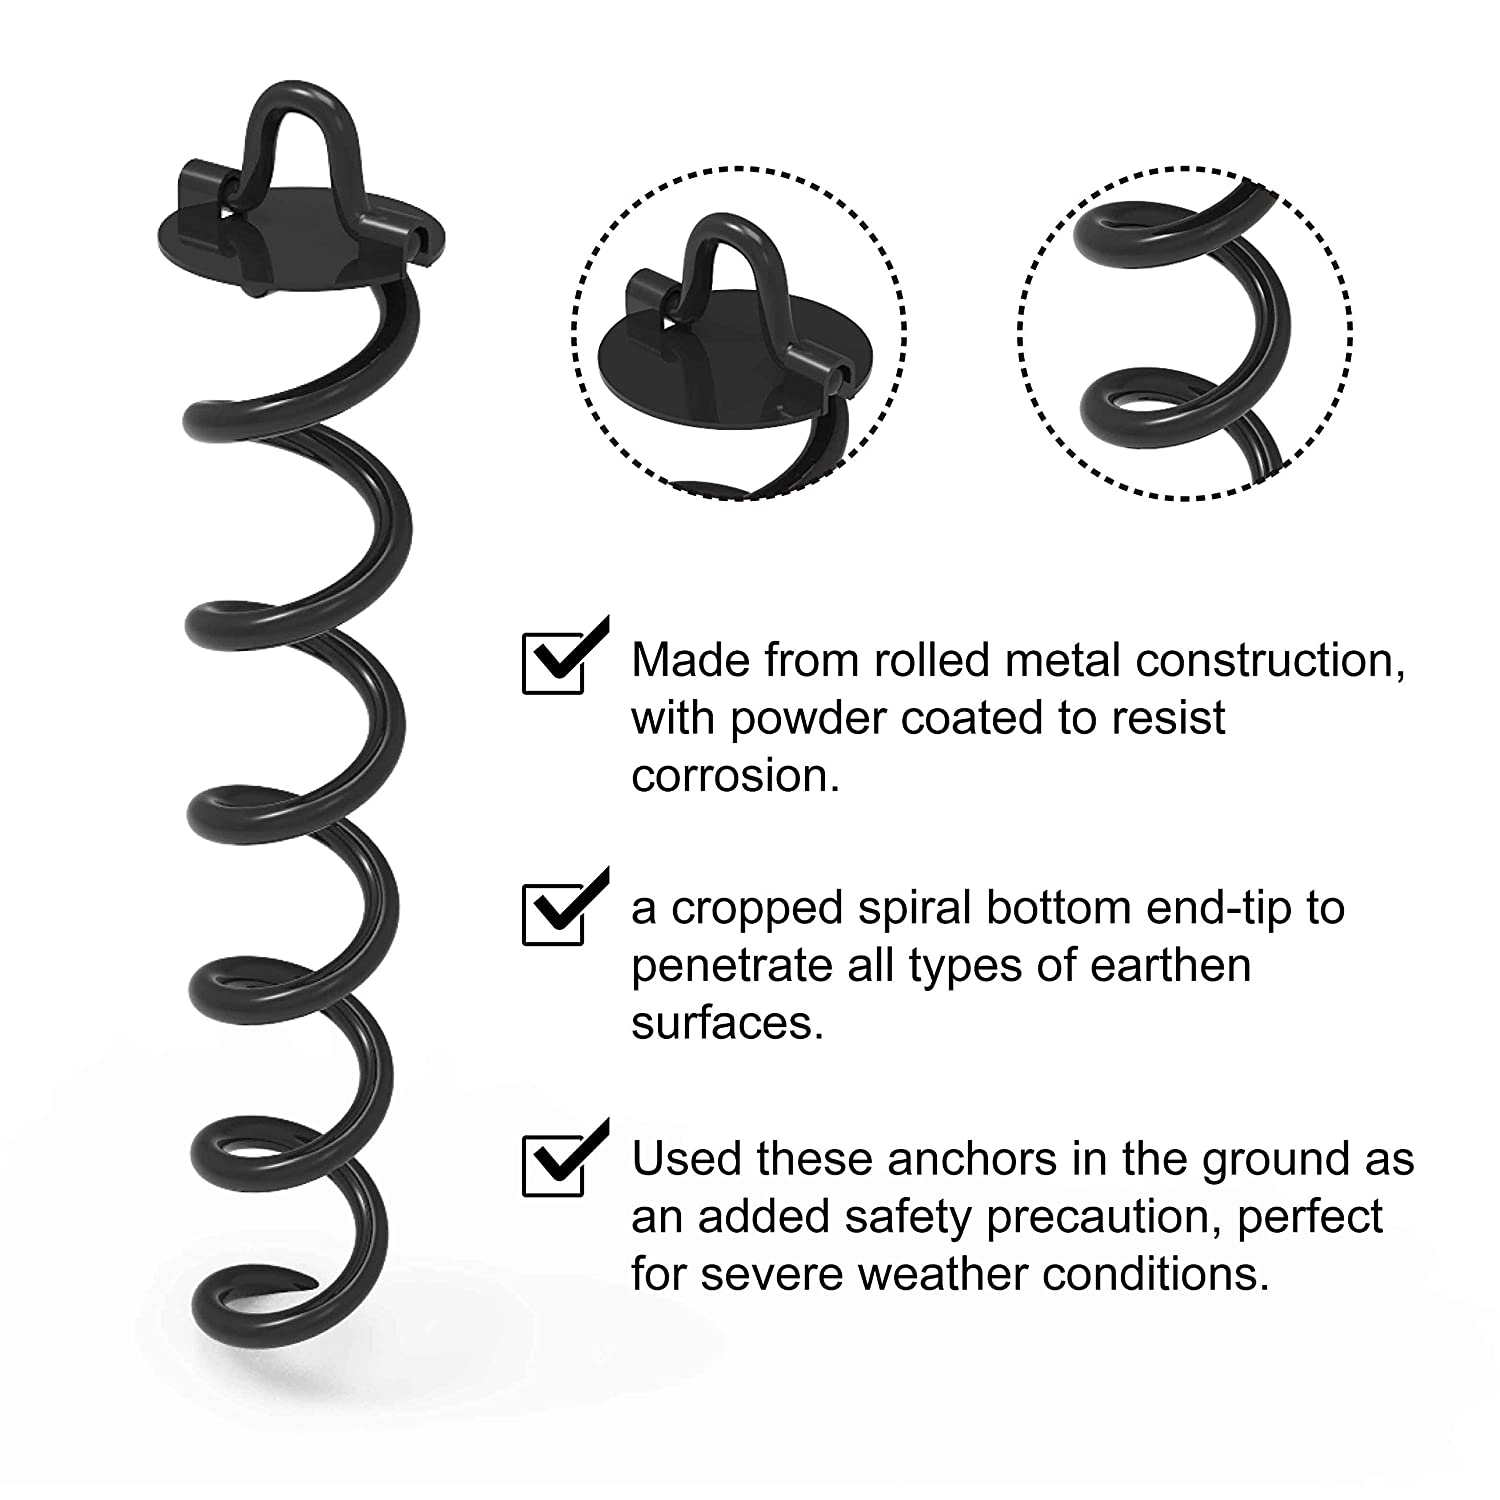 4Pcs Bonus tie-Downs for Tethering The Dog Trampoline Anchor Stakes for Anchor Swings Set Down Tent Portable Basketball Goal ABCCANOPY Spiral Ground Anchor with Dog Tie Out